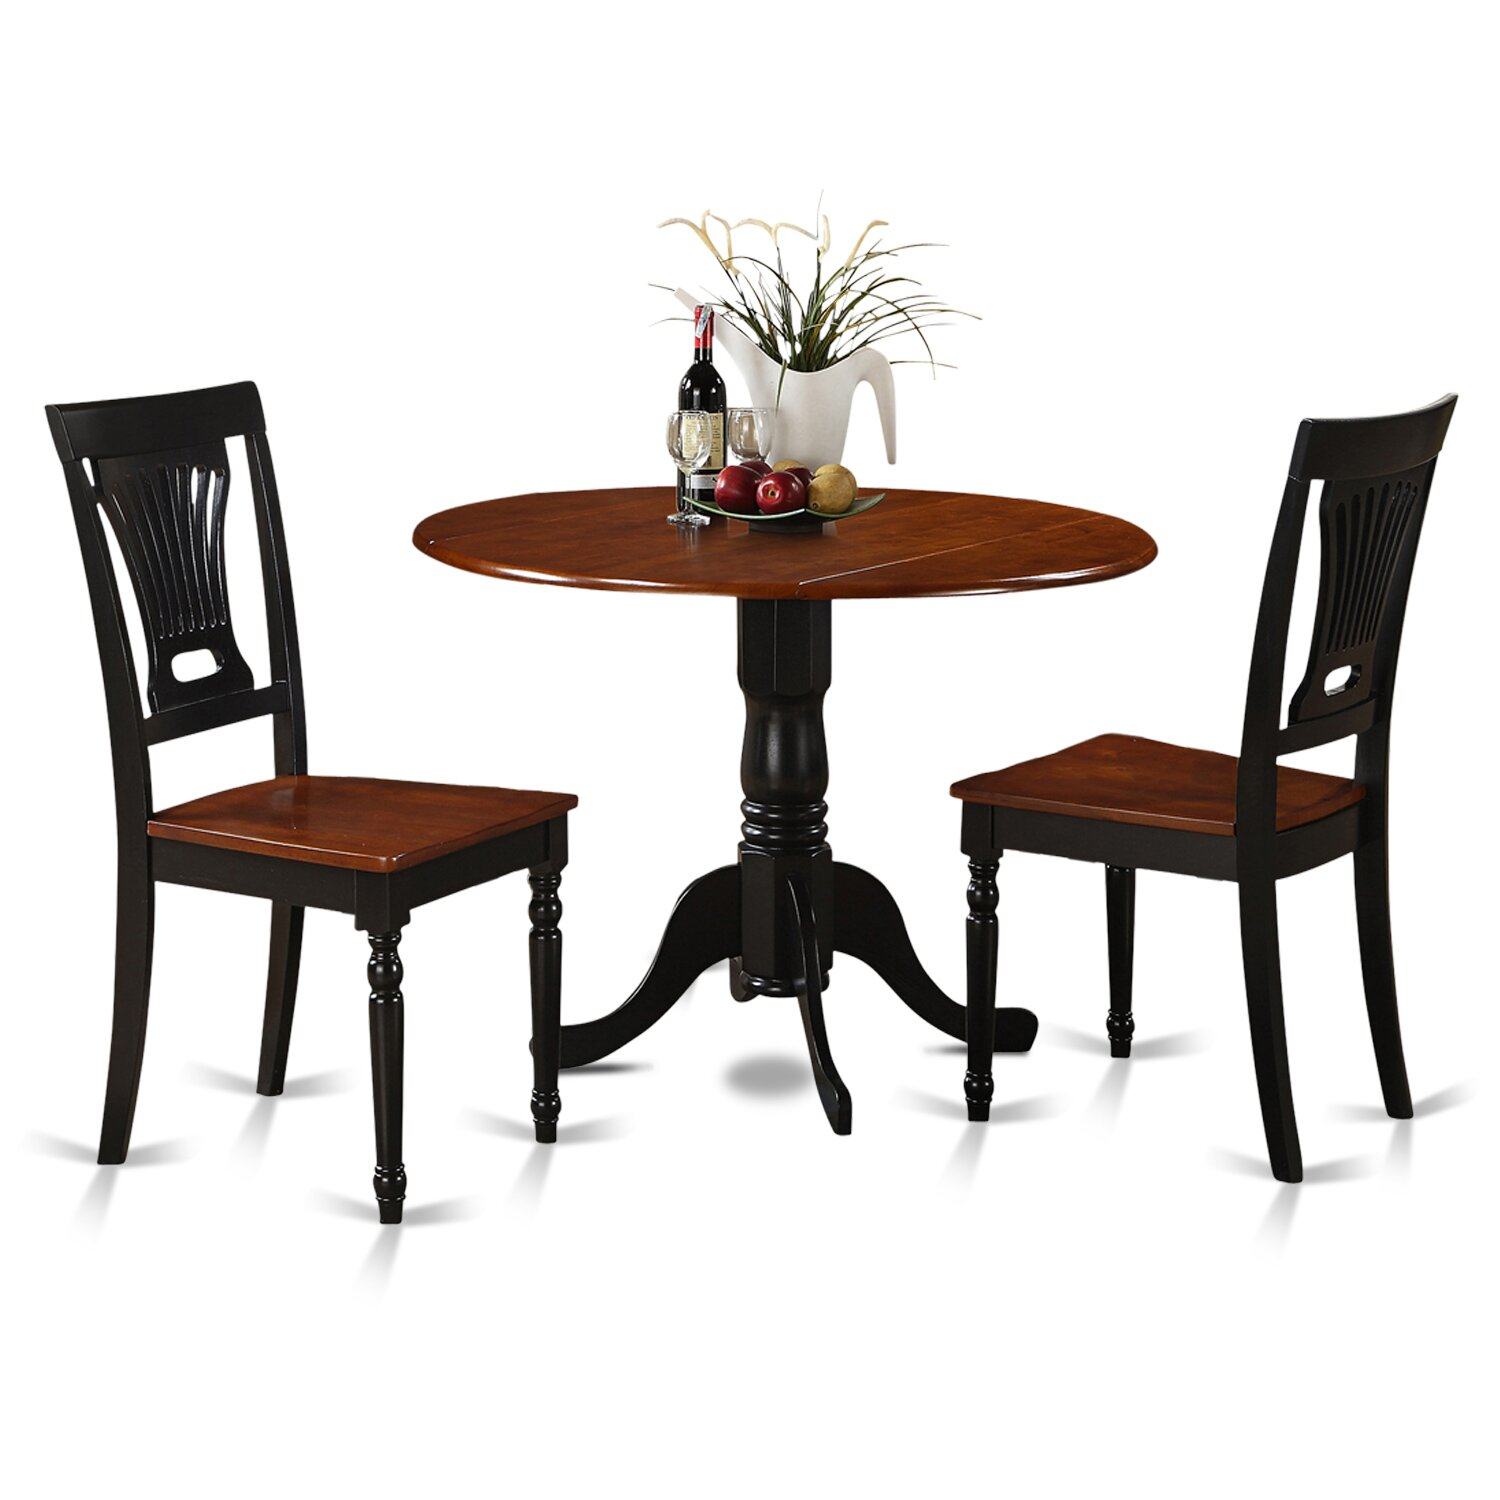 Wooden importers dublin 3 piece dining set reviews wayfair for Small kitchen table and chairs